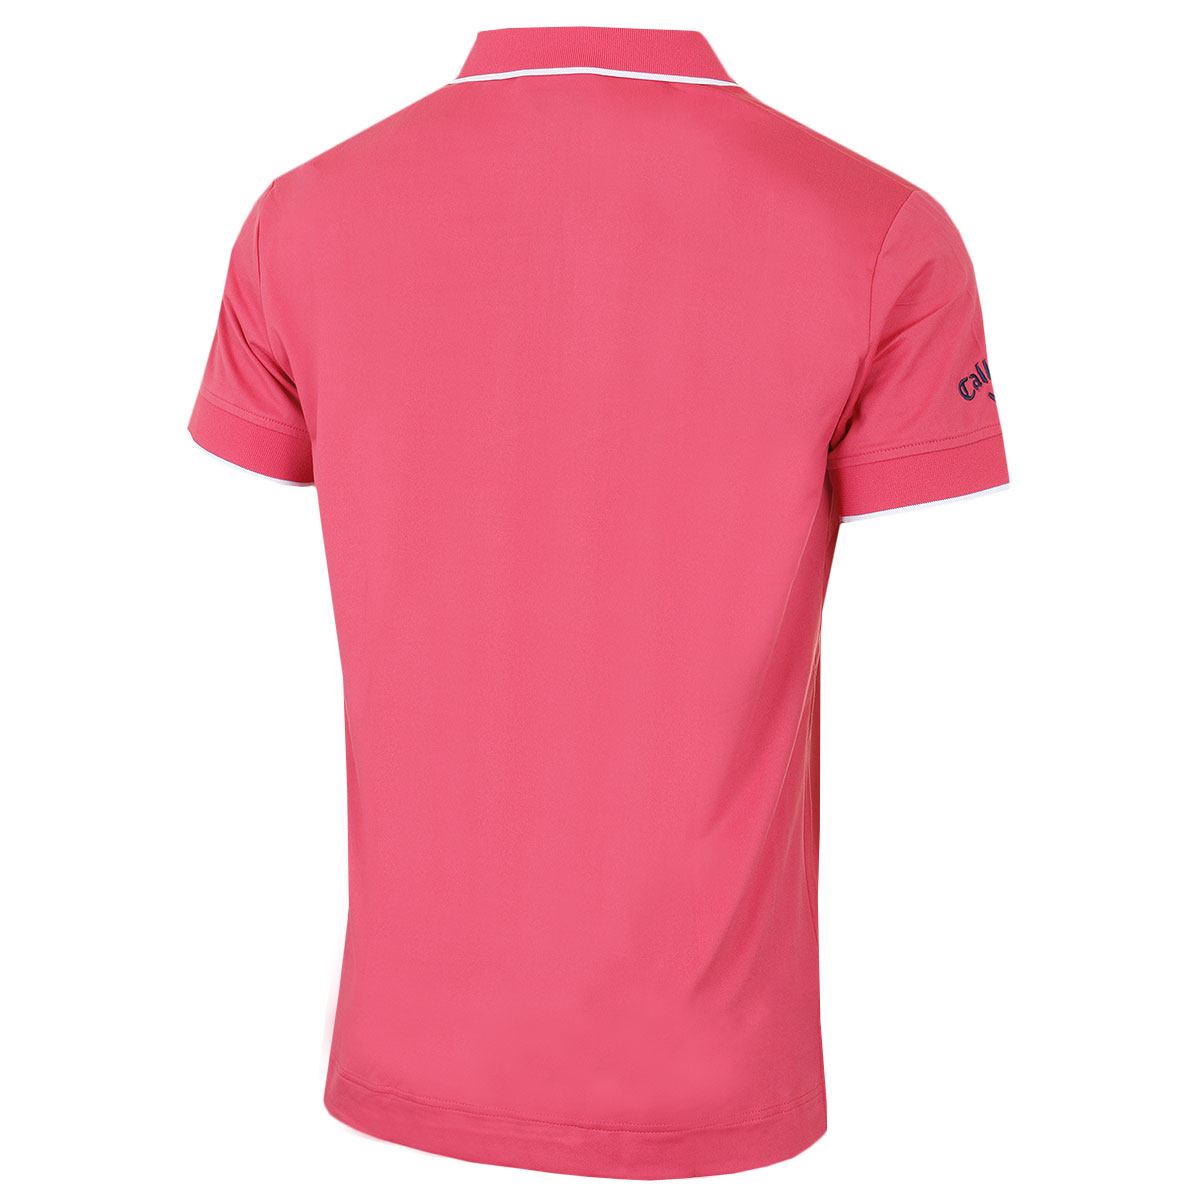 Callaway-Golf-Mens-X-Range-Stretch-Chest-Piped-Polo-Shirt-60-OFF-RRP thumbnail 6